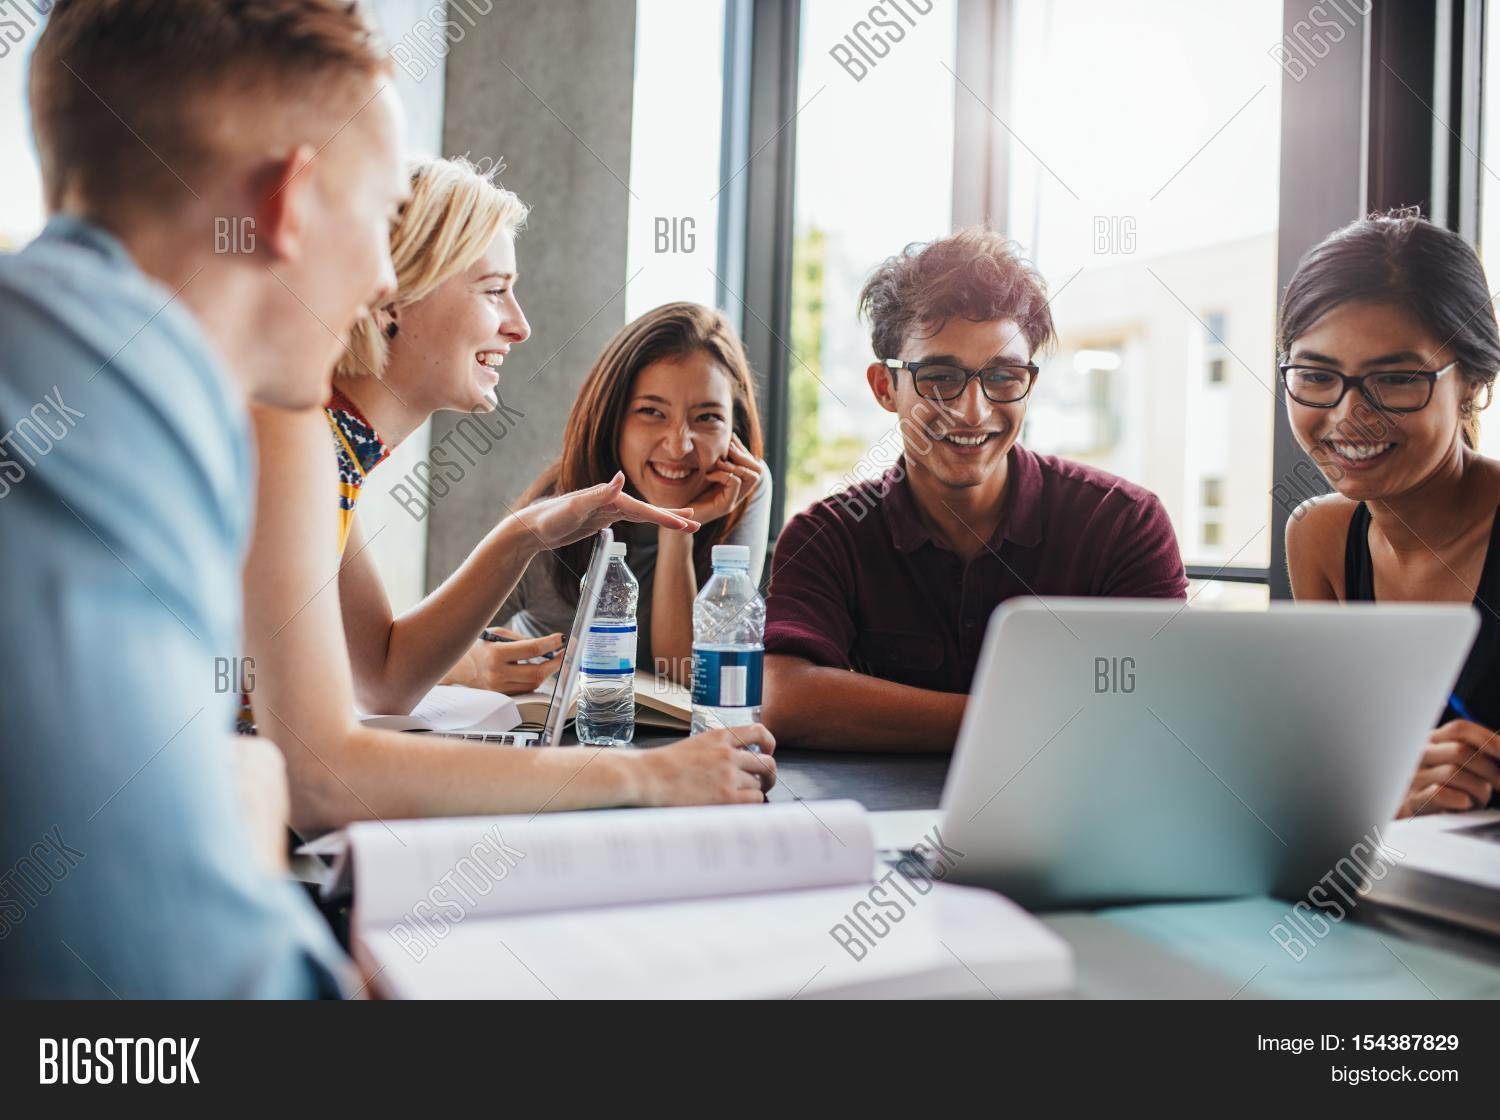 Study Group - 322 Photos - 49 Reviews - Education - 248 ...